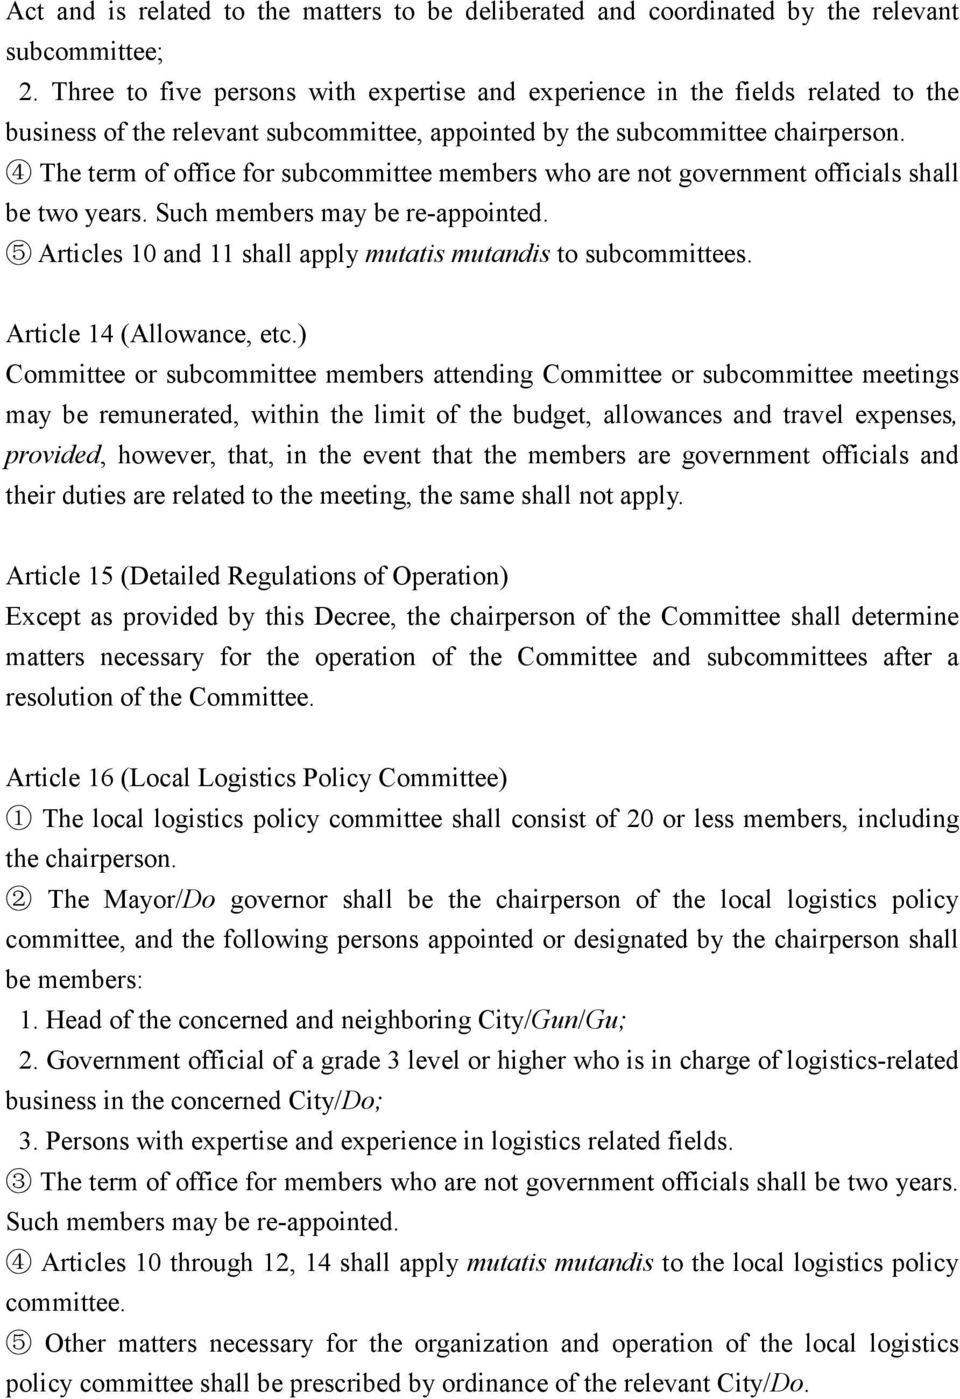 4 The term of office for subcommittee members who are not government officials shall be two years. Such members may be re-appointed. 5 Articles 10 and 11 shall apply mutatis mutandis to subcommittees.